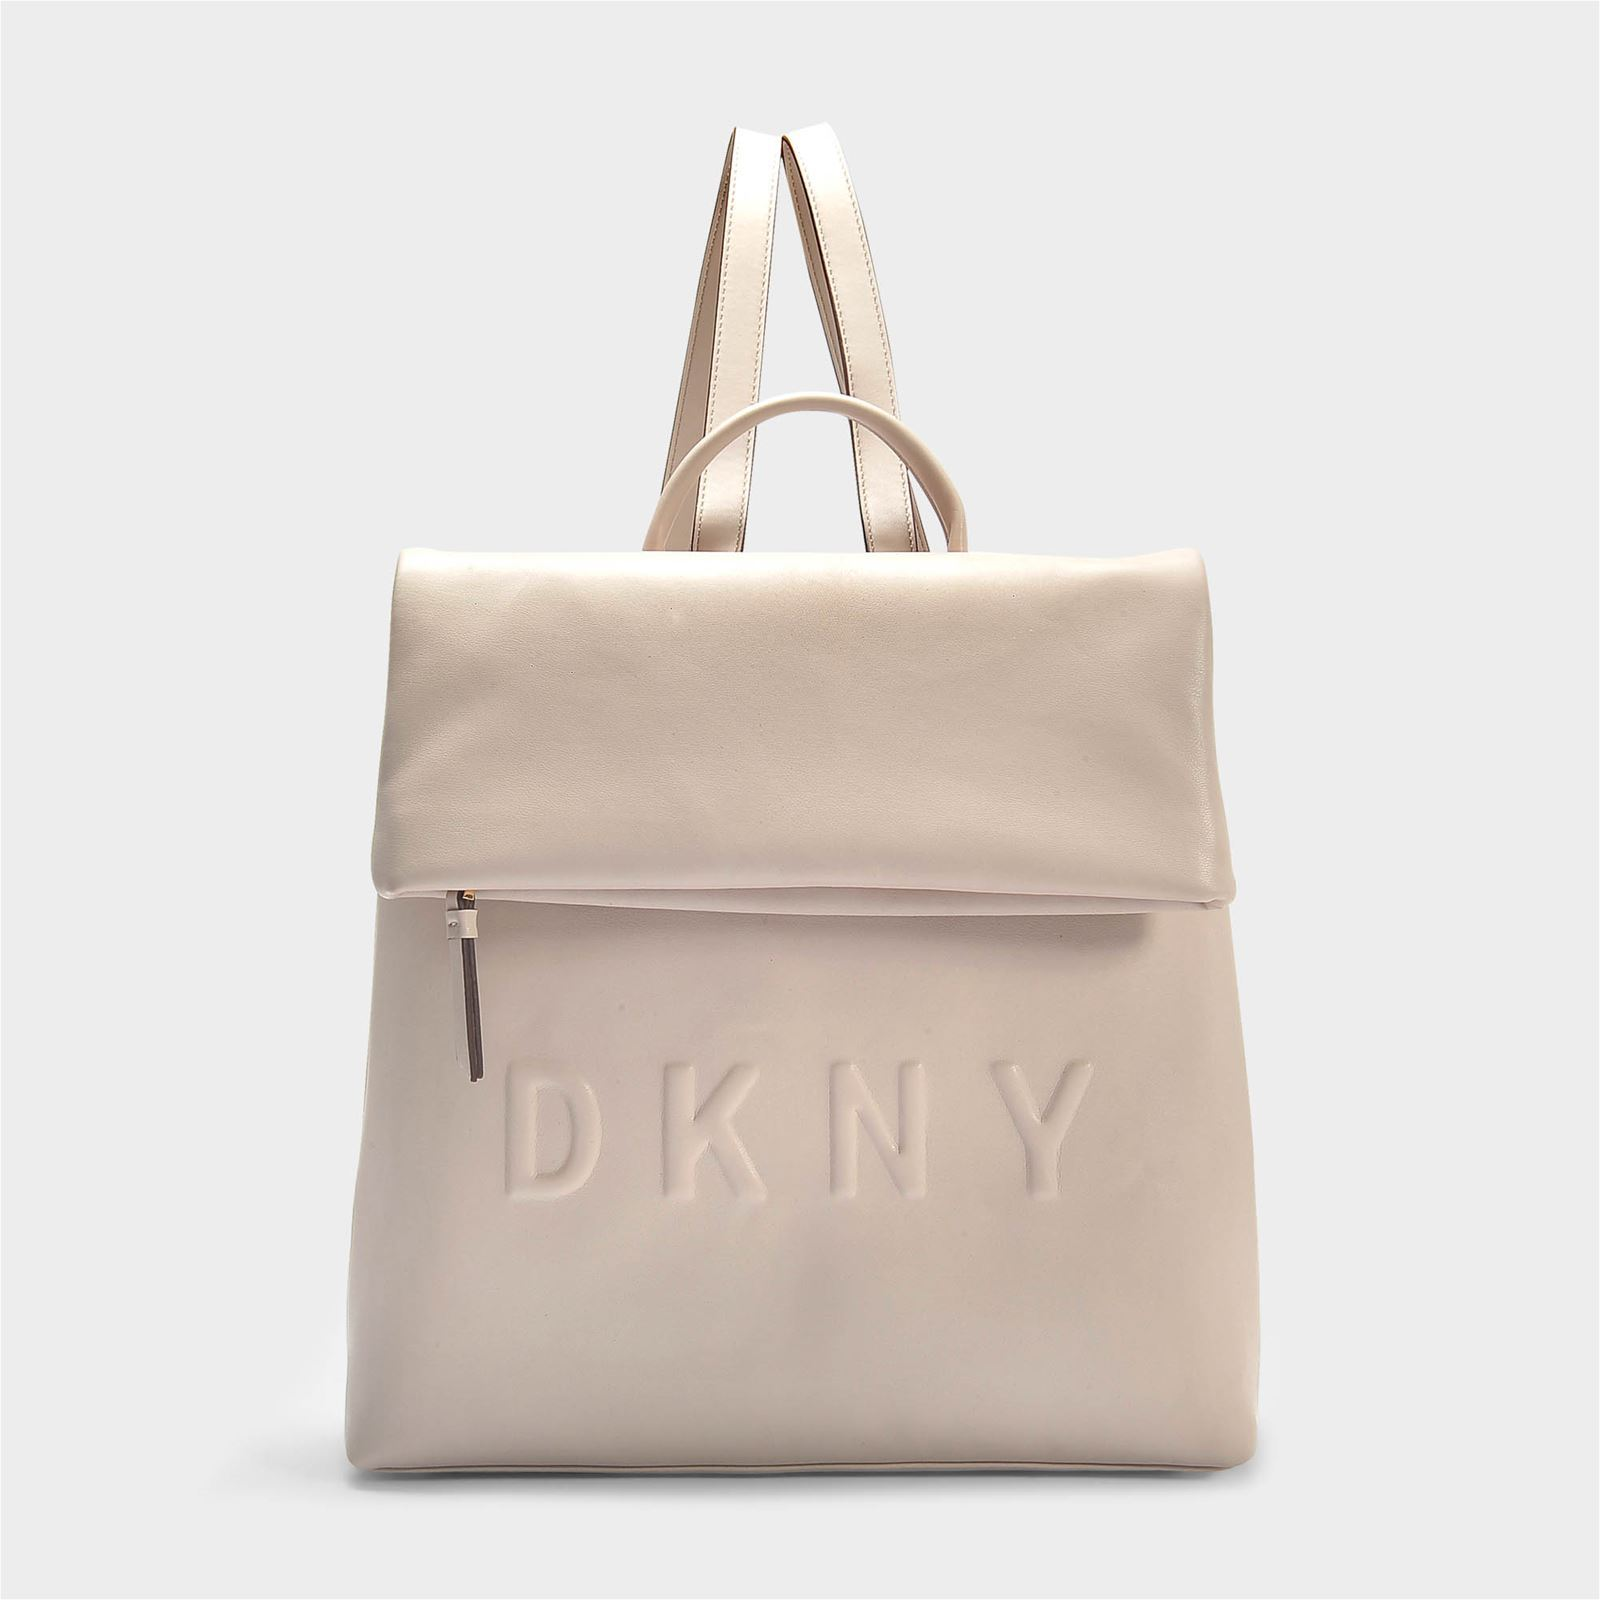 Sac Dkny In Main Nay Tilly H093kvrmm imag Noir À TFK5l3Jcu1